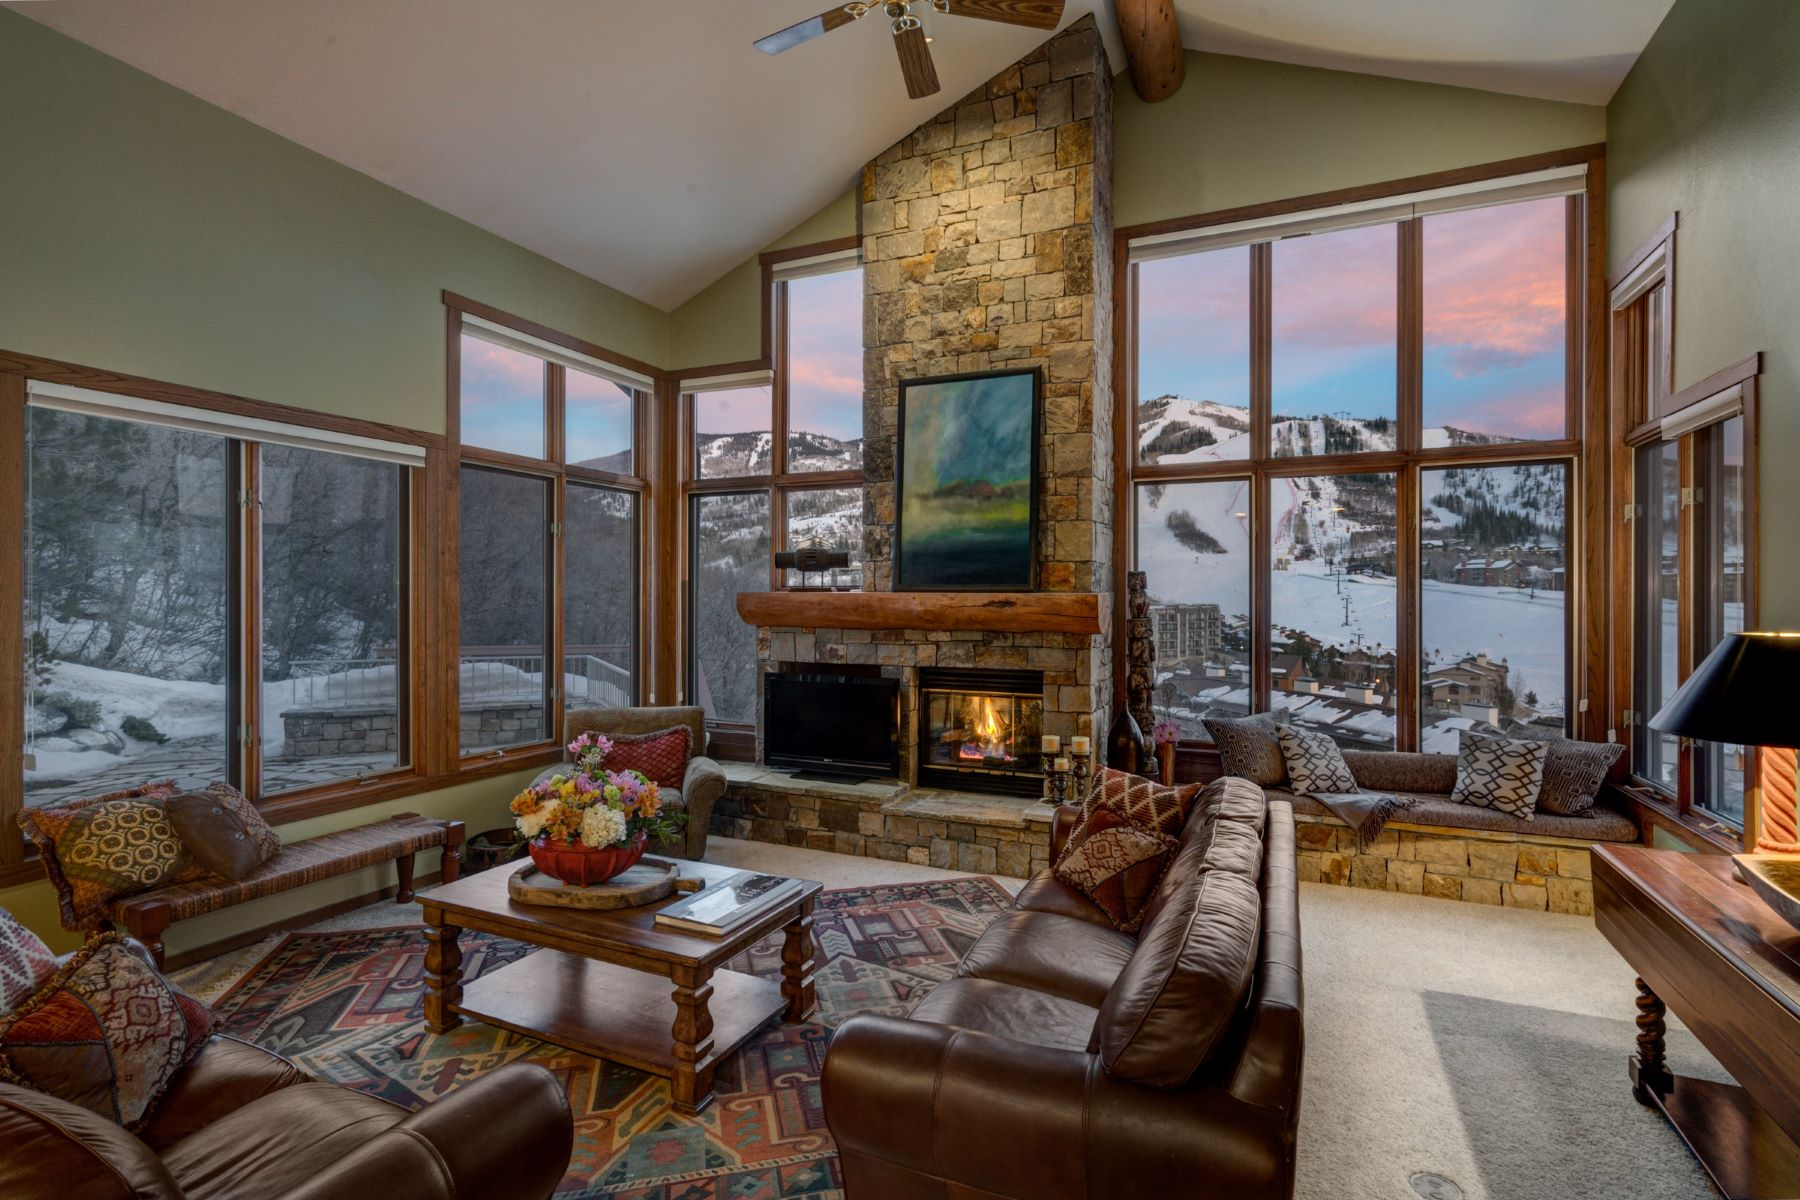 Single Family Home for Sale at The Sunday House 1770 River Queen Lane Steamboat Springs, Colorado 80487 United States